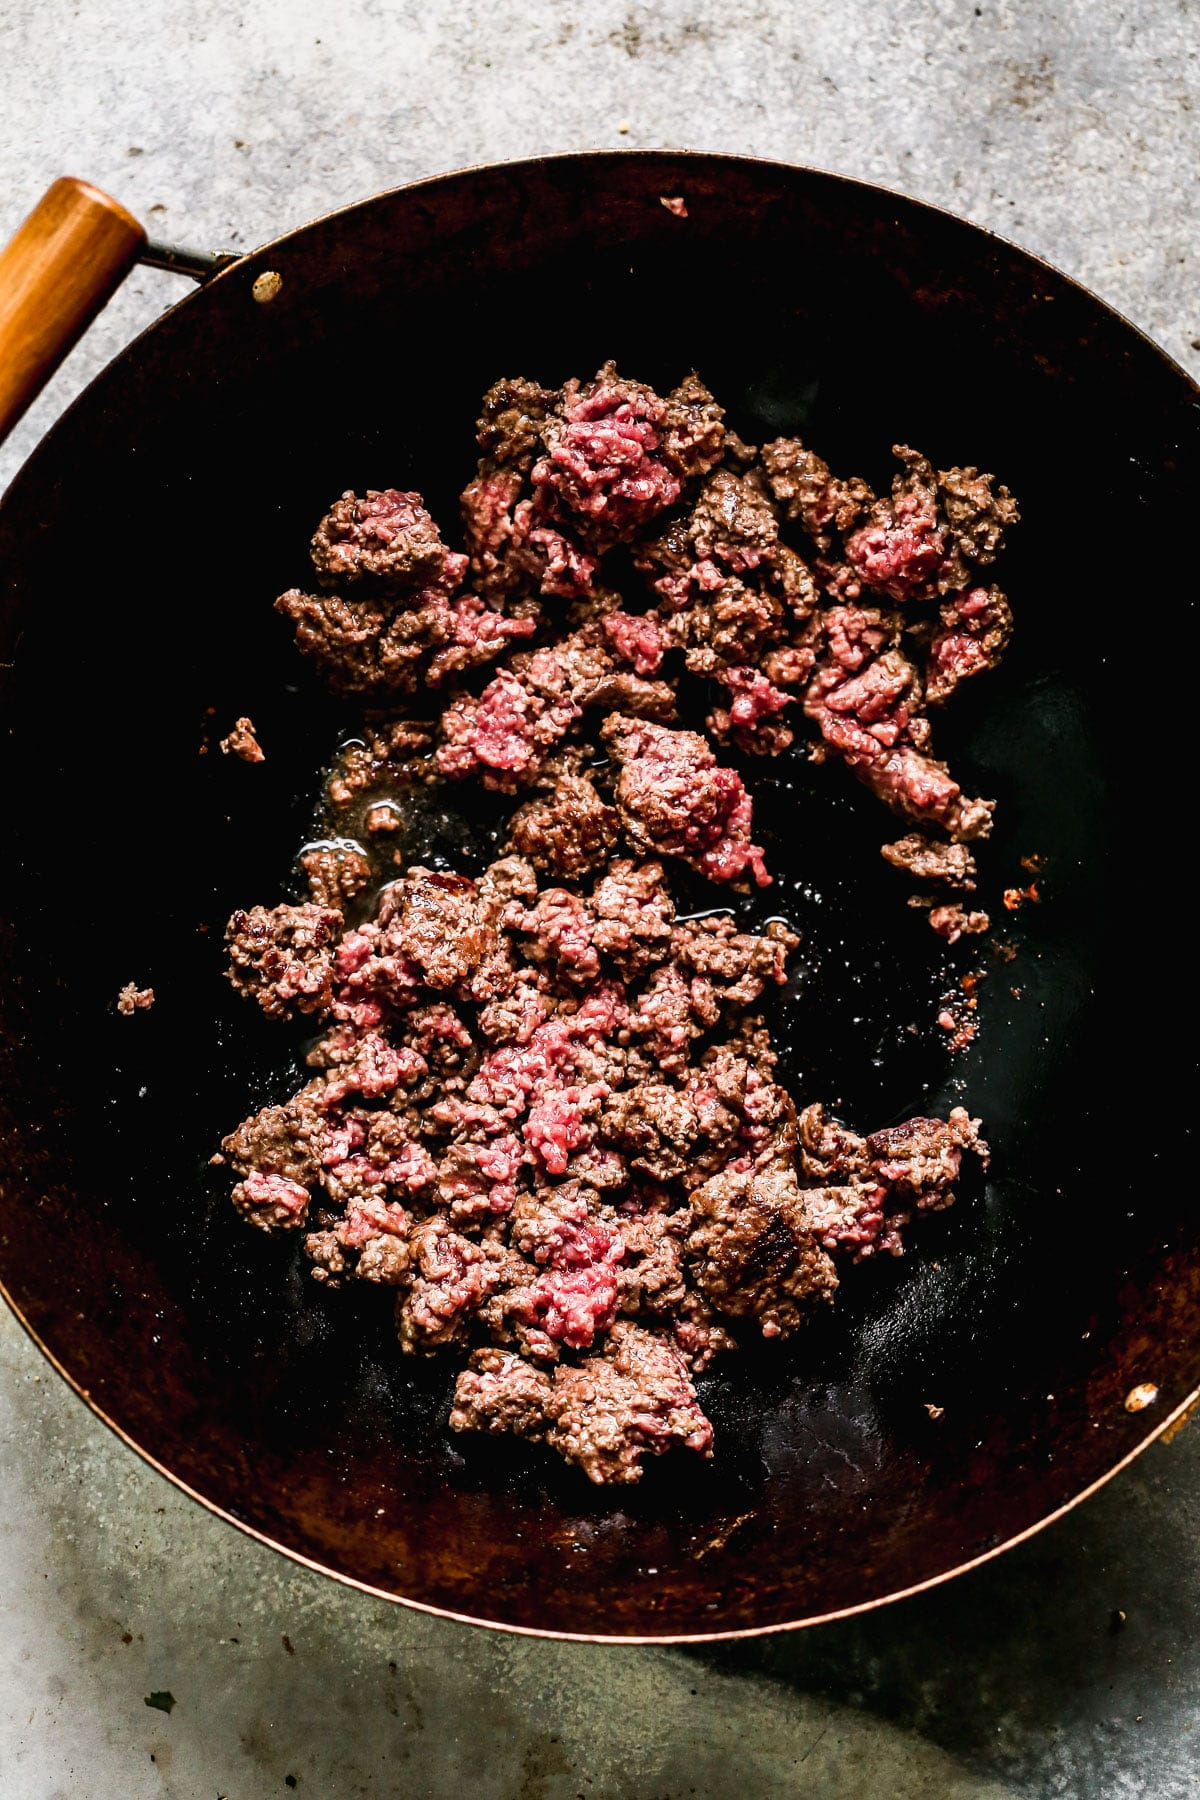 Ground Beef cooking in a wok